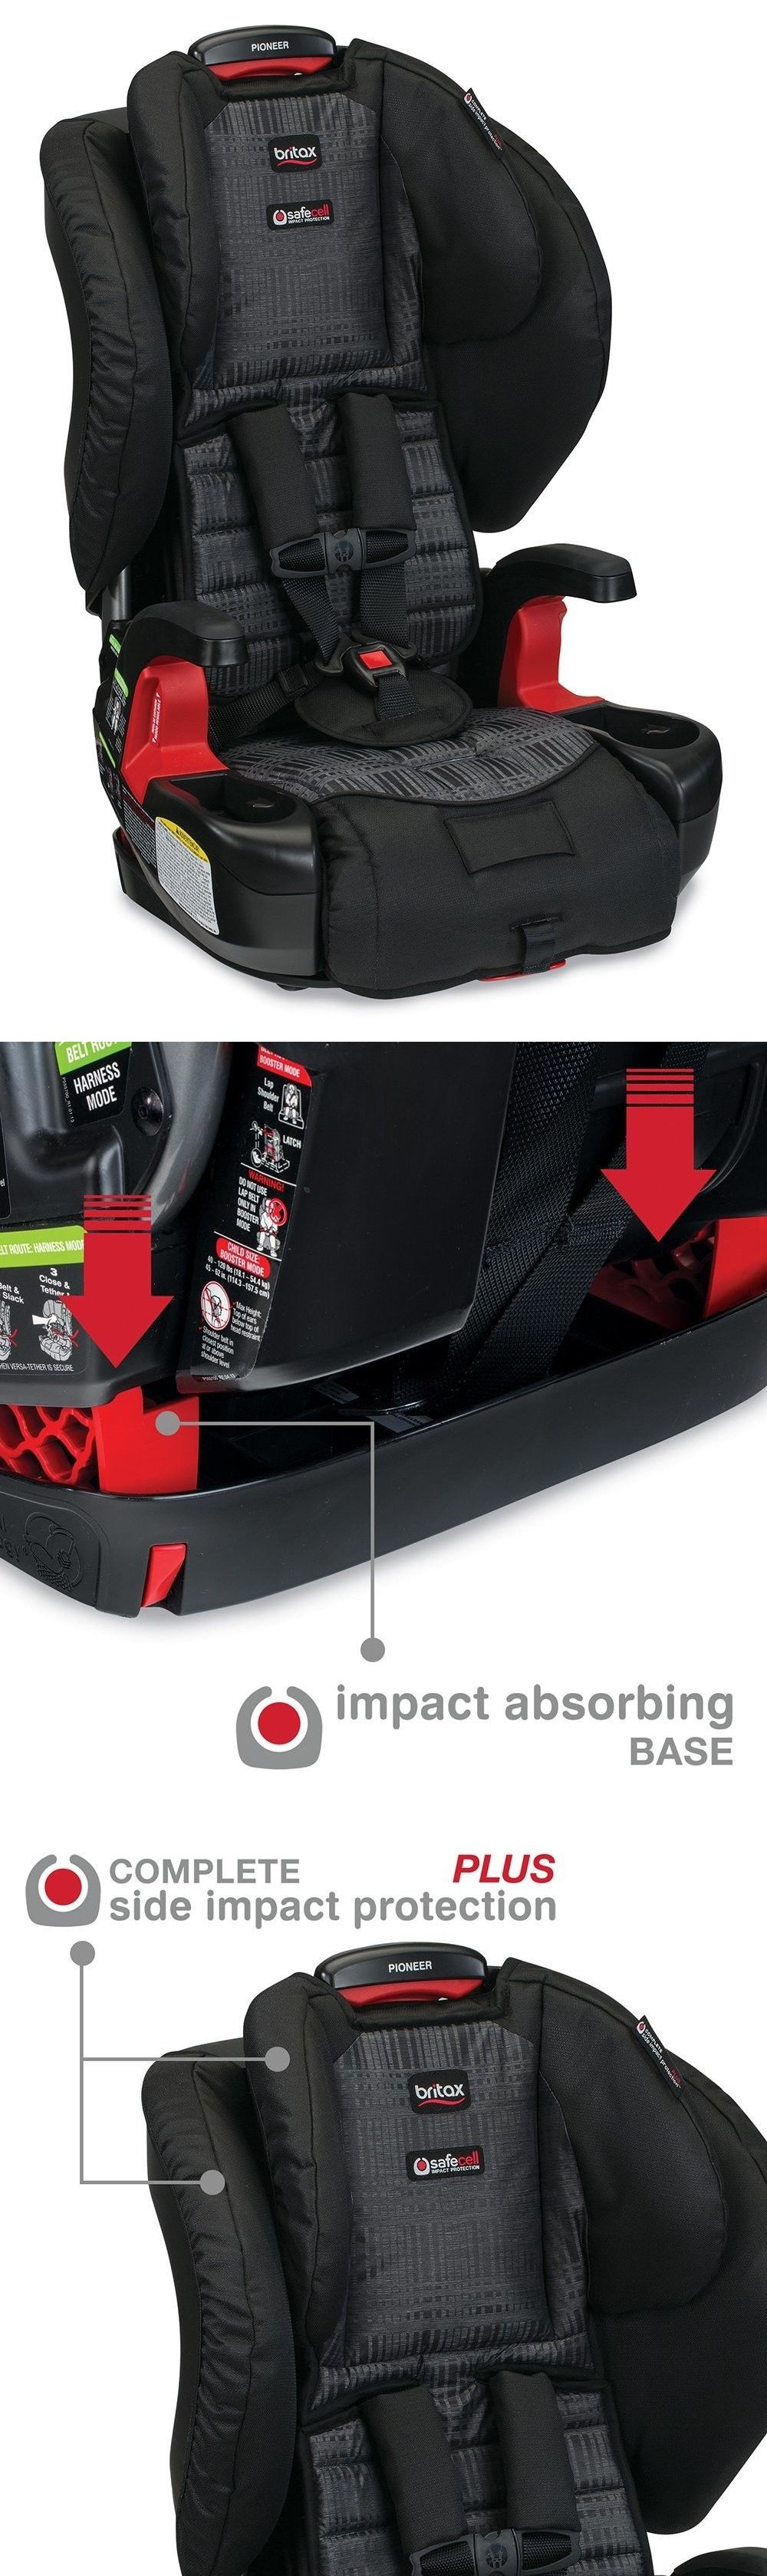 Booster to 80lbs 66694: Britax Pioneer Combination Harness -2 ...